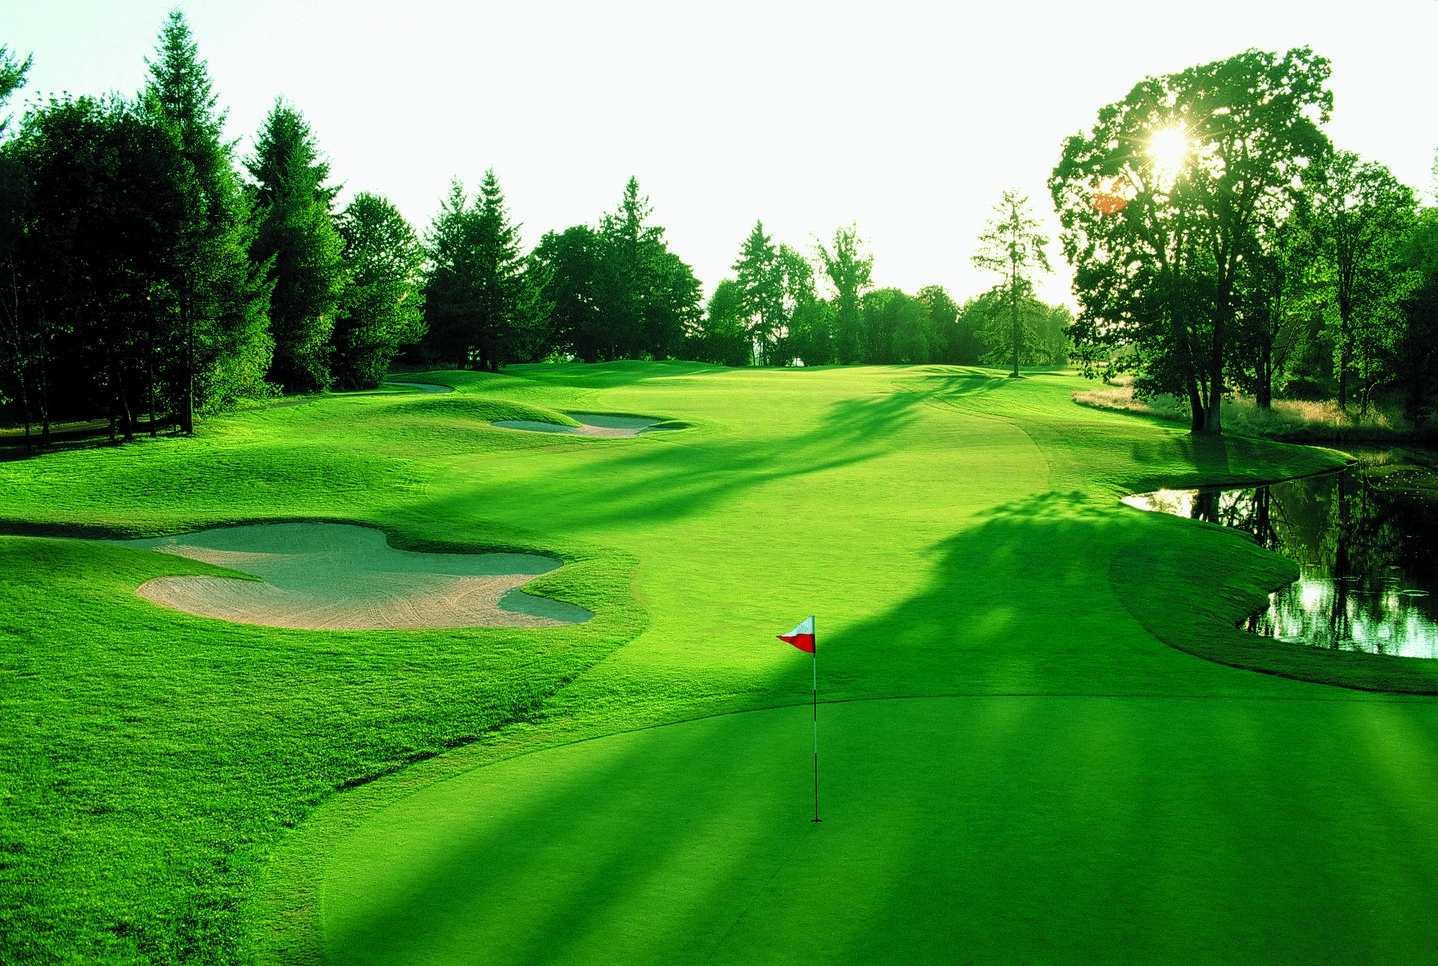 golf course wallpapers - wallpaper cave